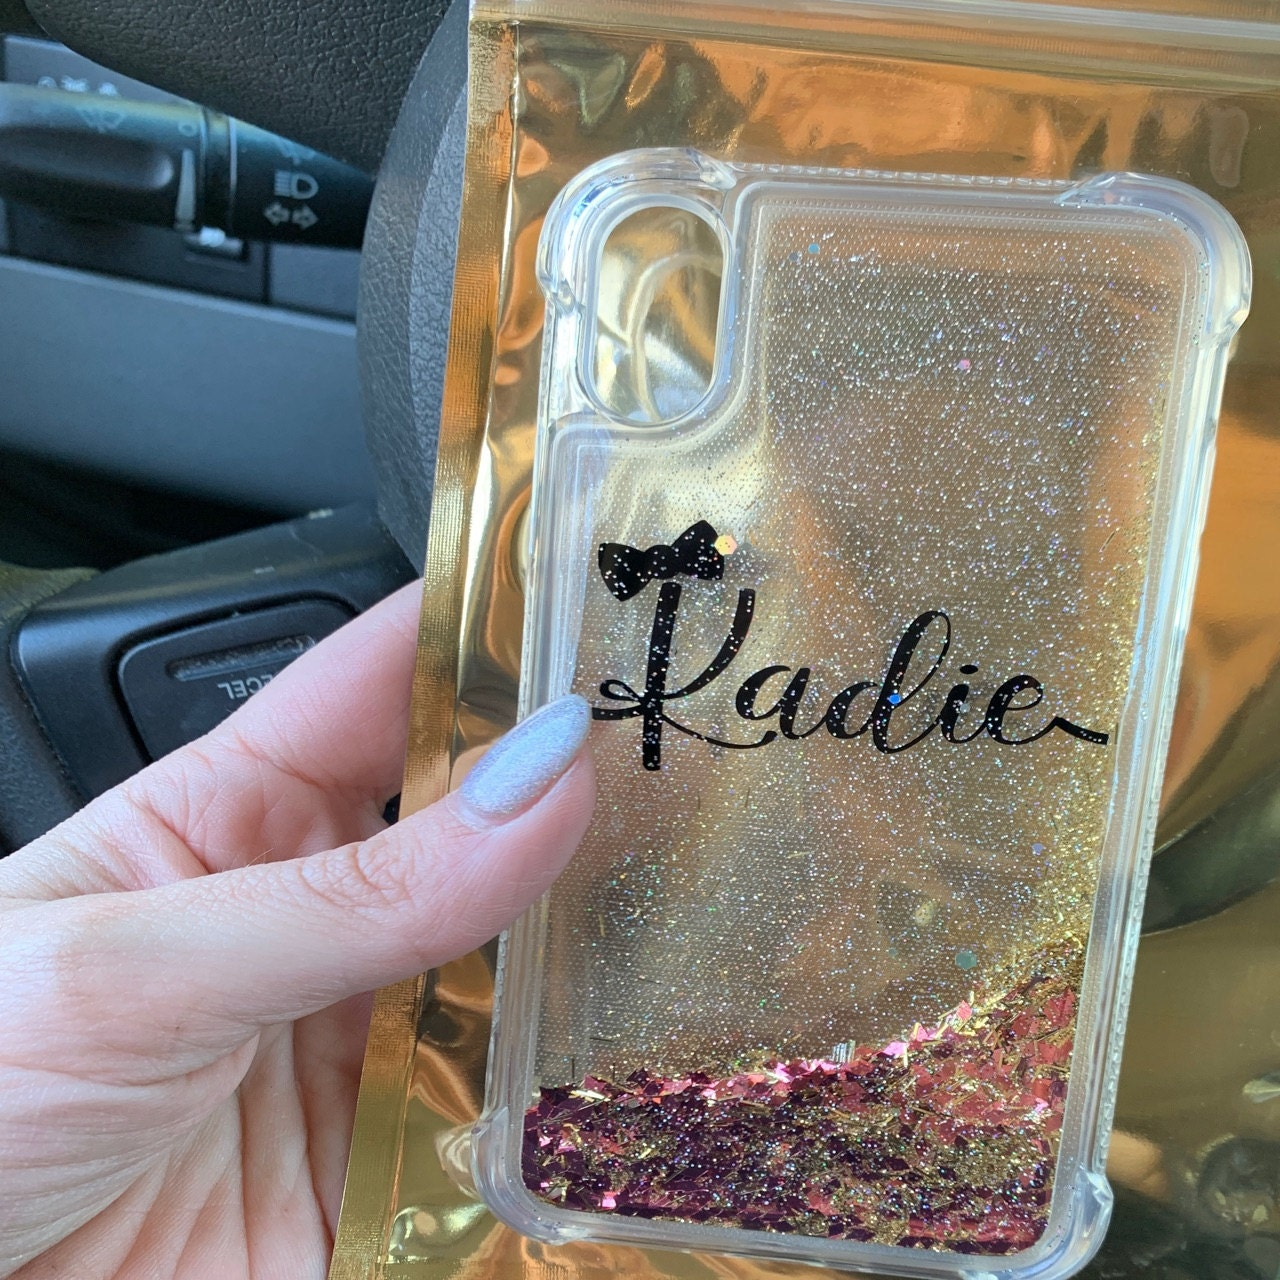 Kadie Burke added a photo of their purchase